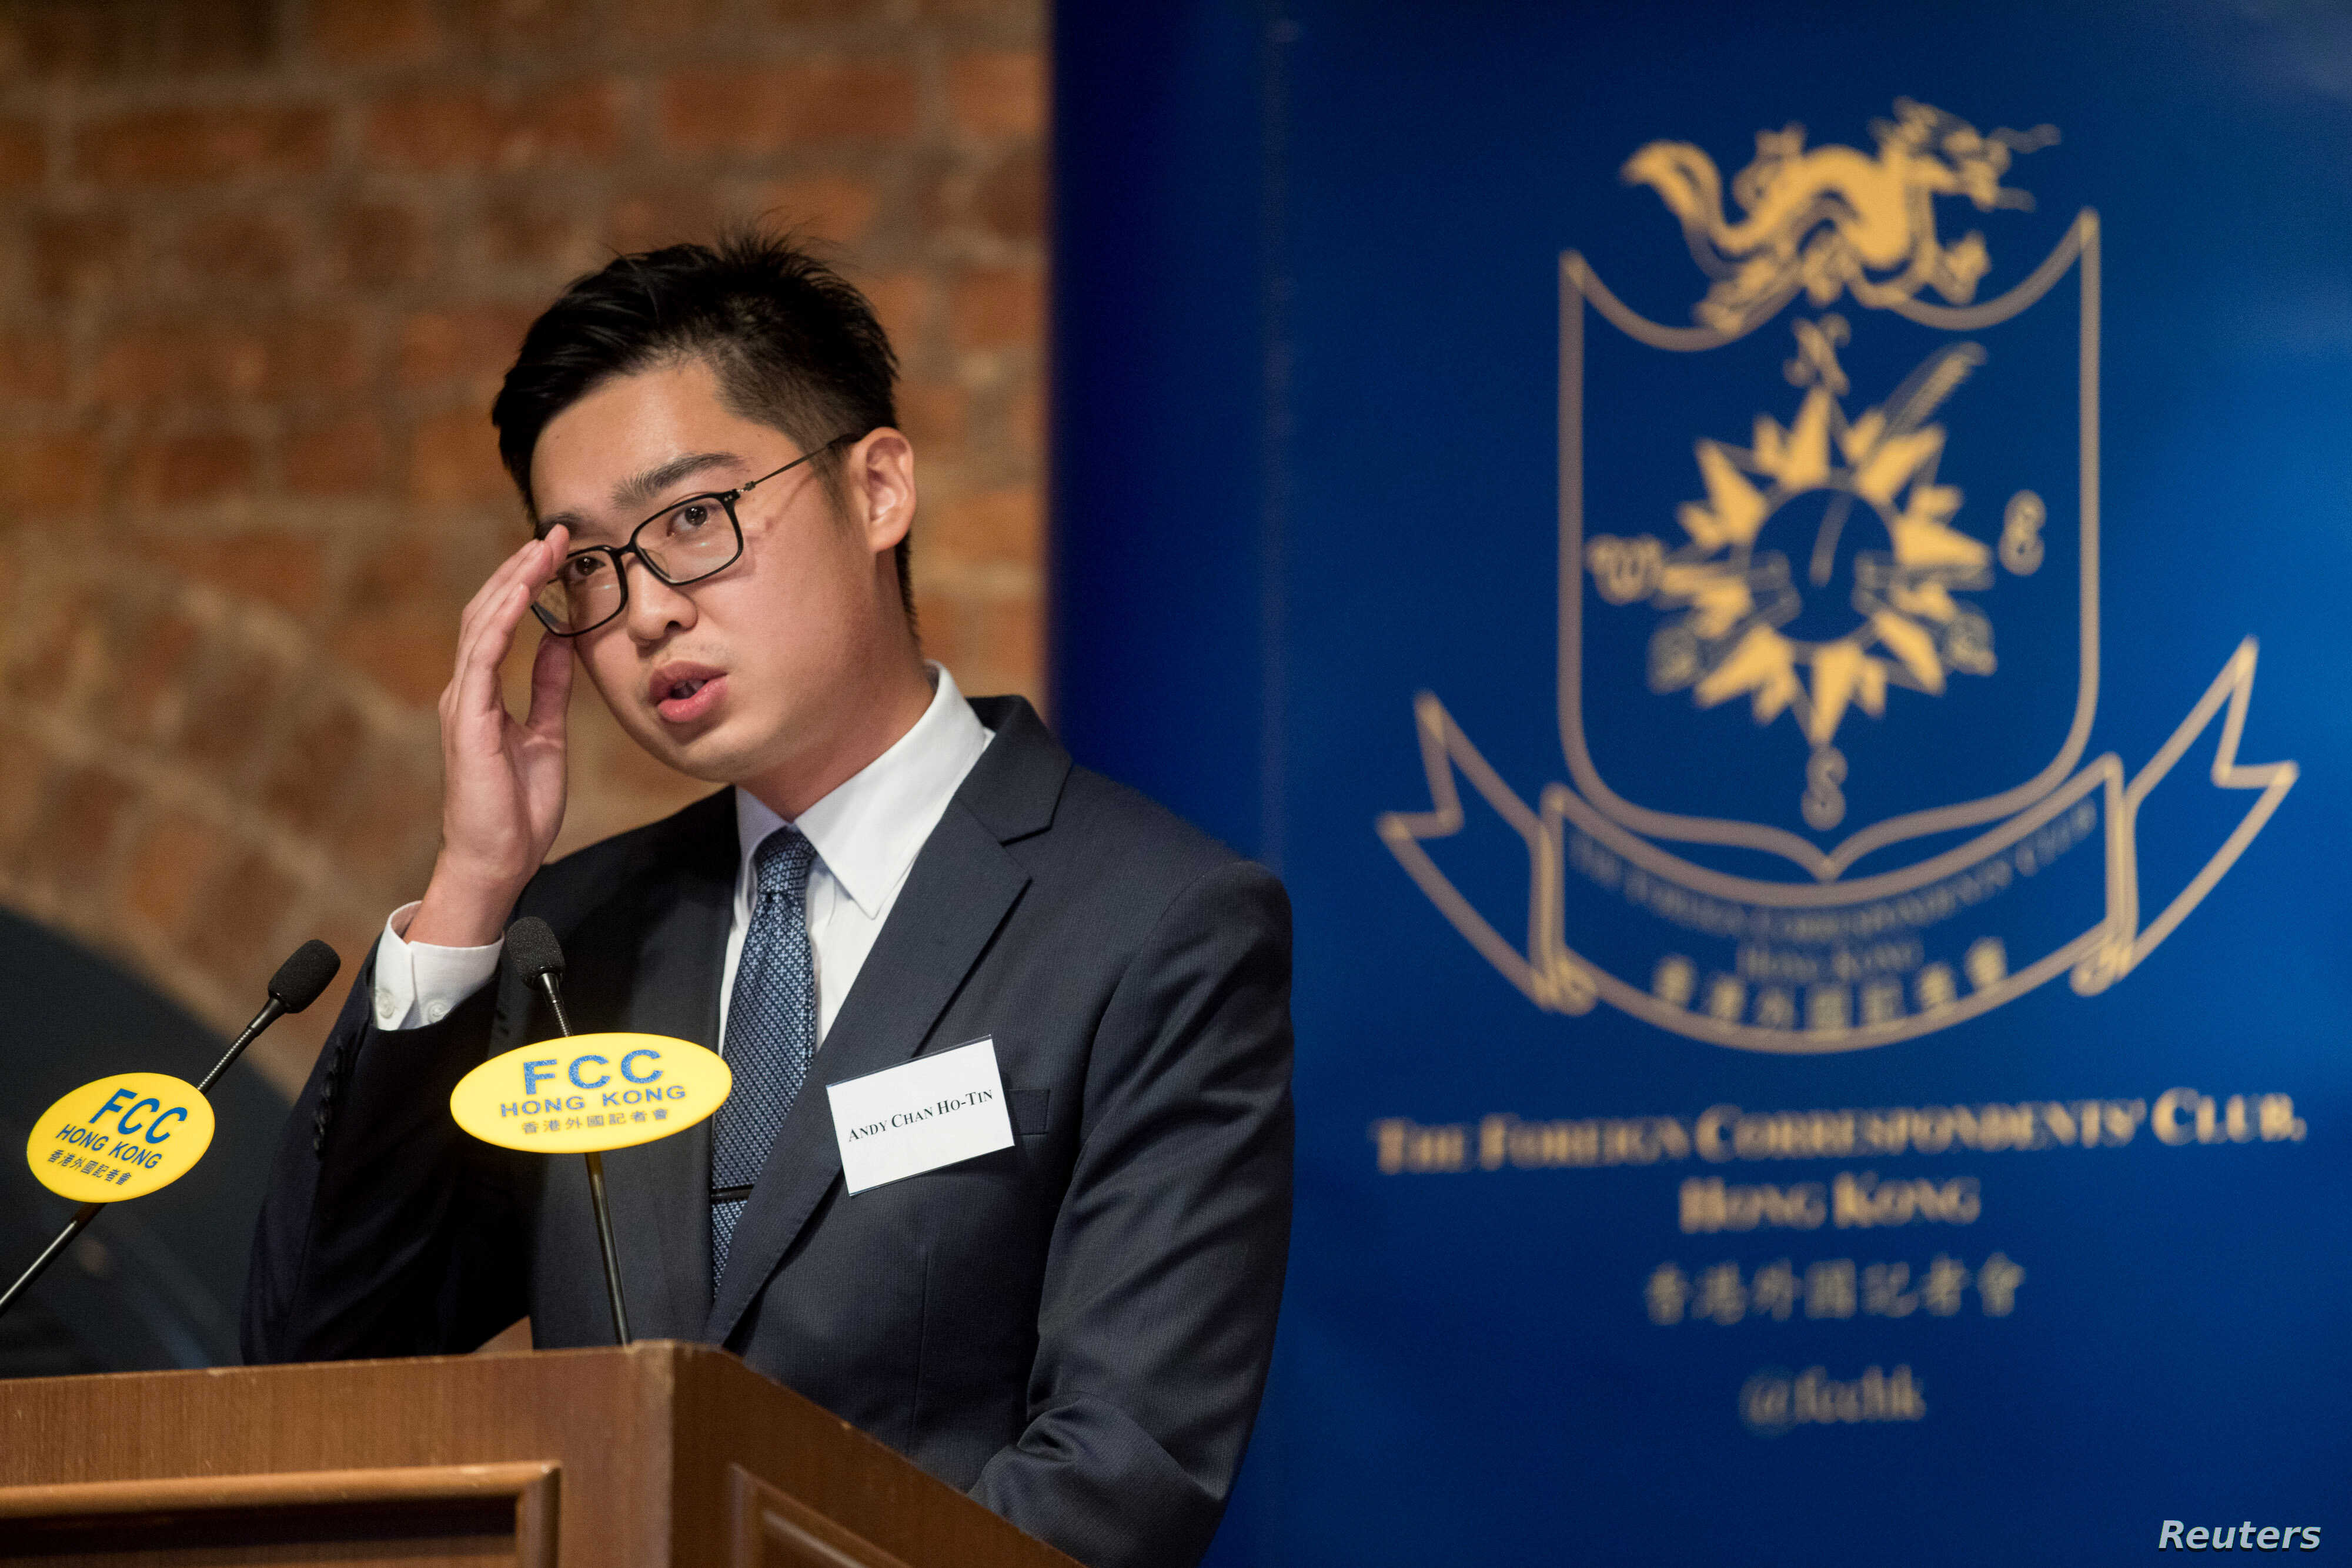 Andy Chan, founder of the Hong Kong National Party, speaks during a luncheon at the Foreign Correspondents' Club (FCC) in Hong Kong, Aug. 14, 2018.